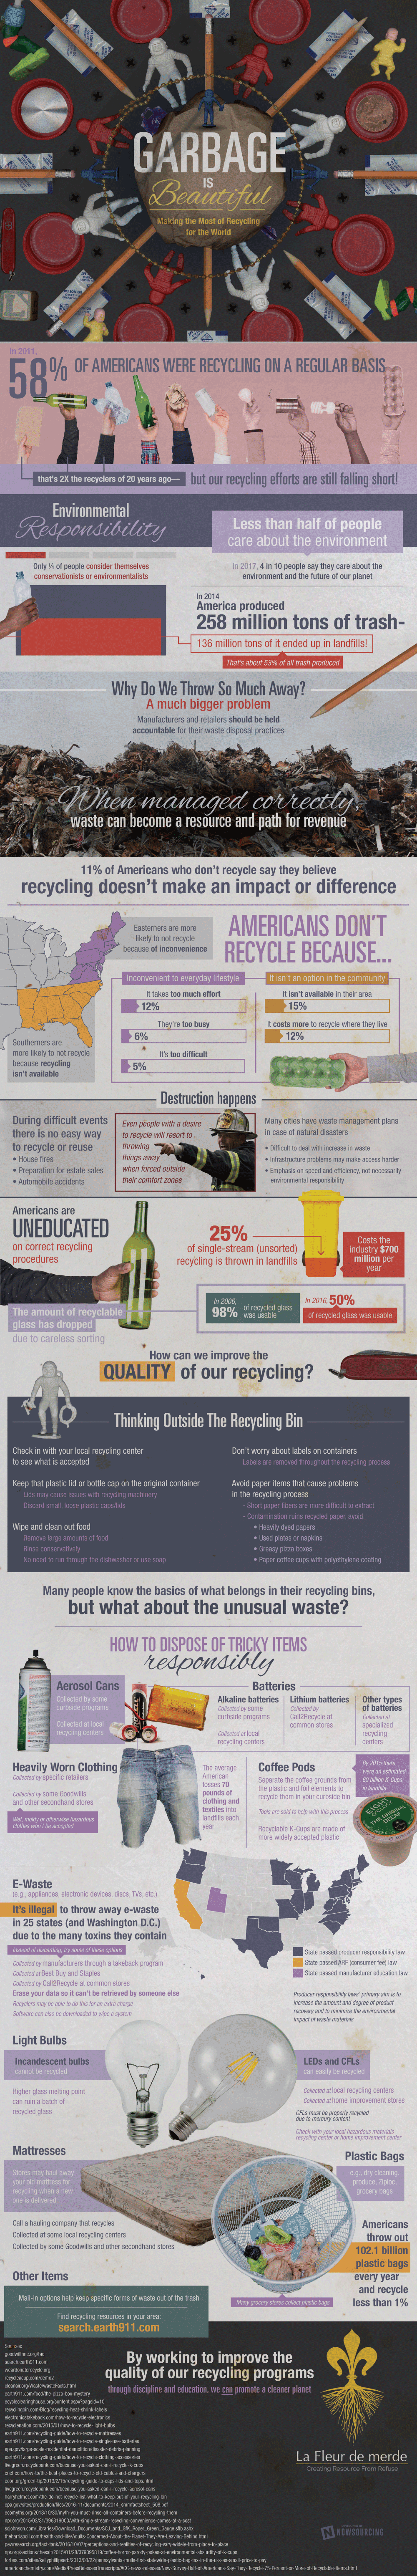 Better Recycling Starts With Education Infographic